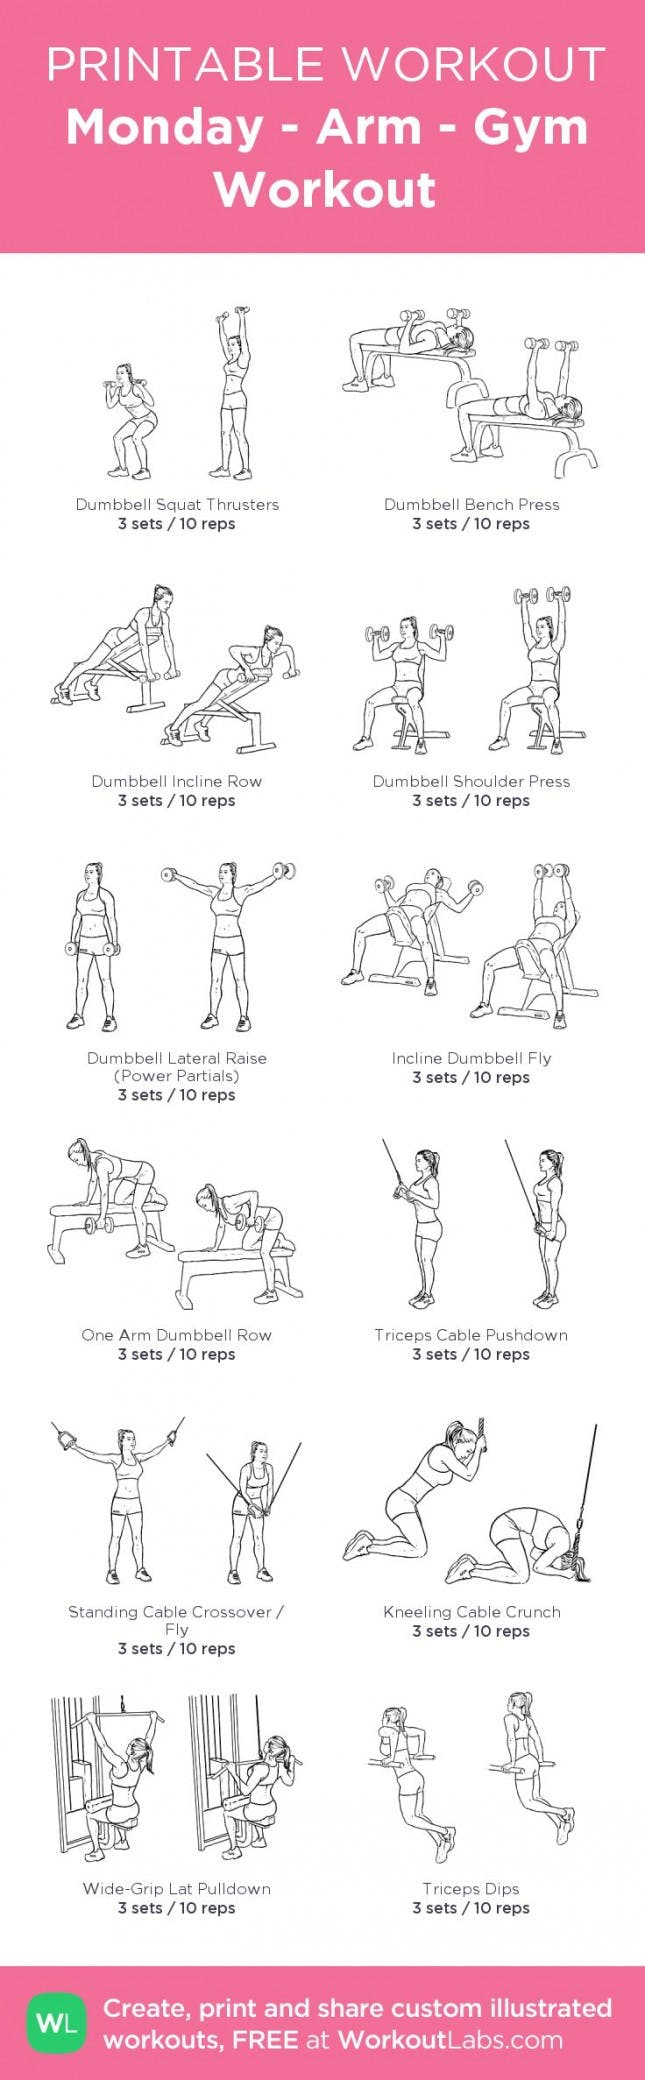 10 Free Printable Workouts To Get Fit Anywhere | Brit + Co - Free Printable Workout Routines